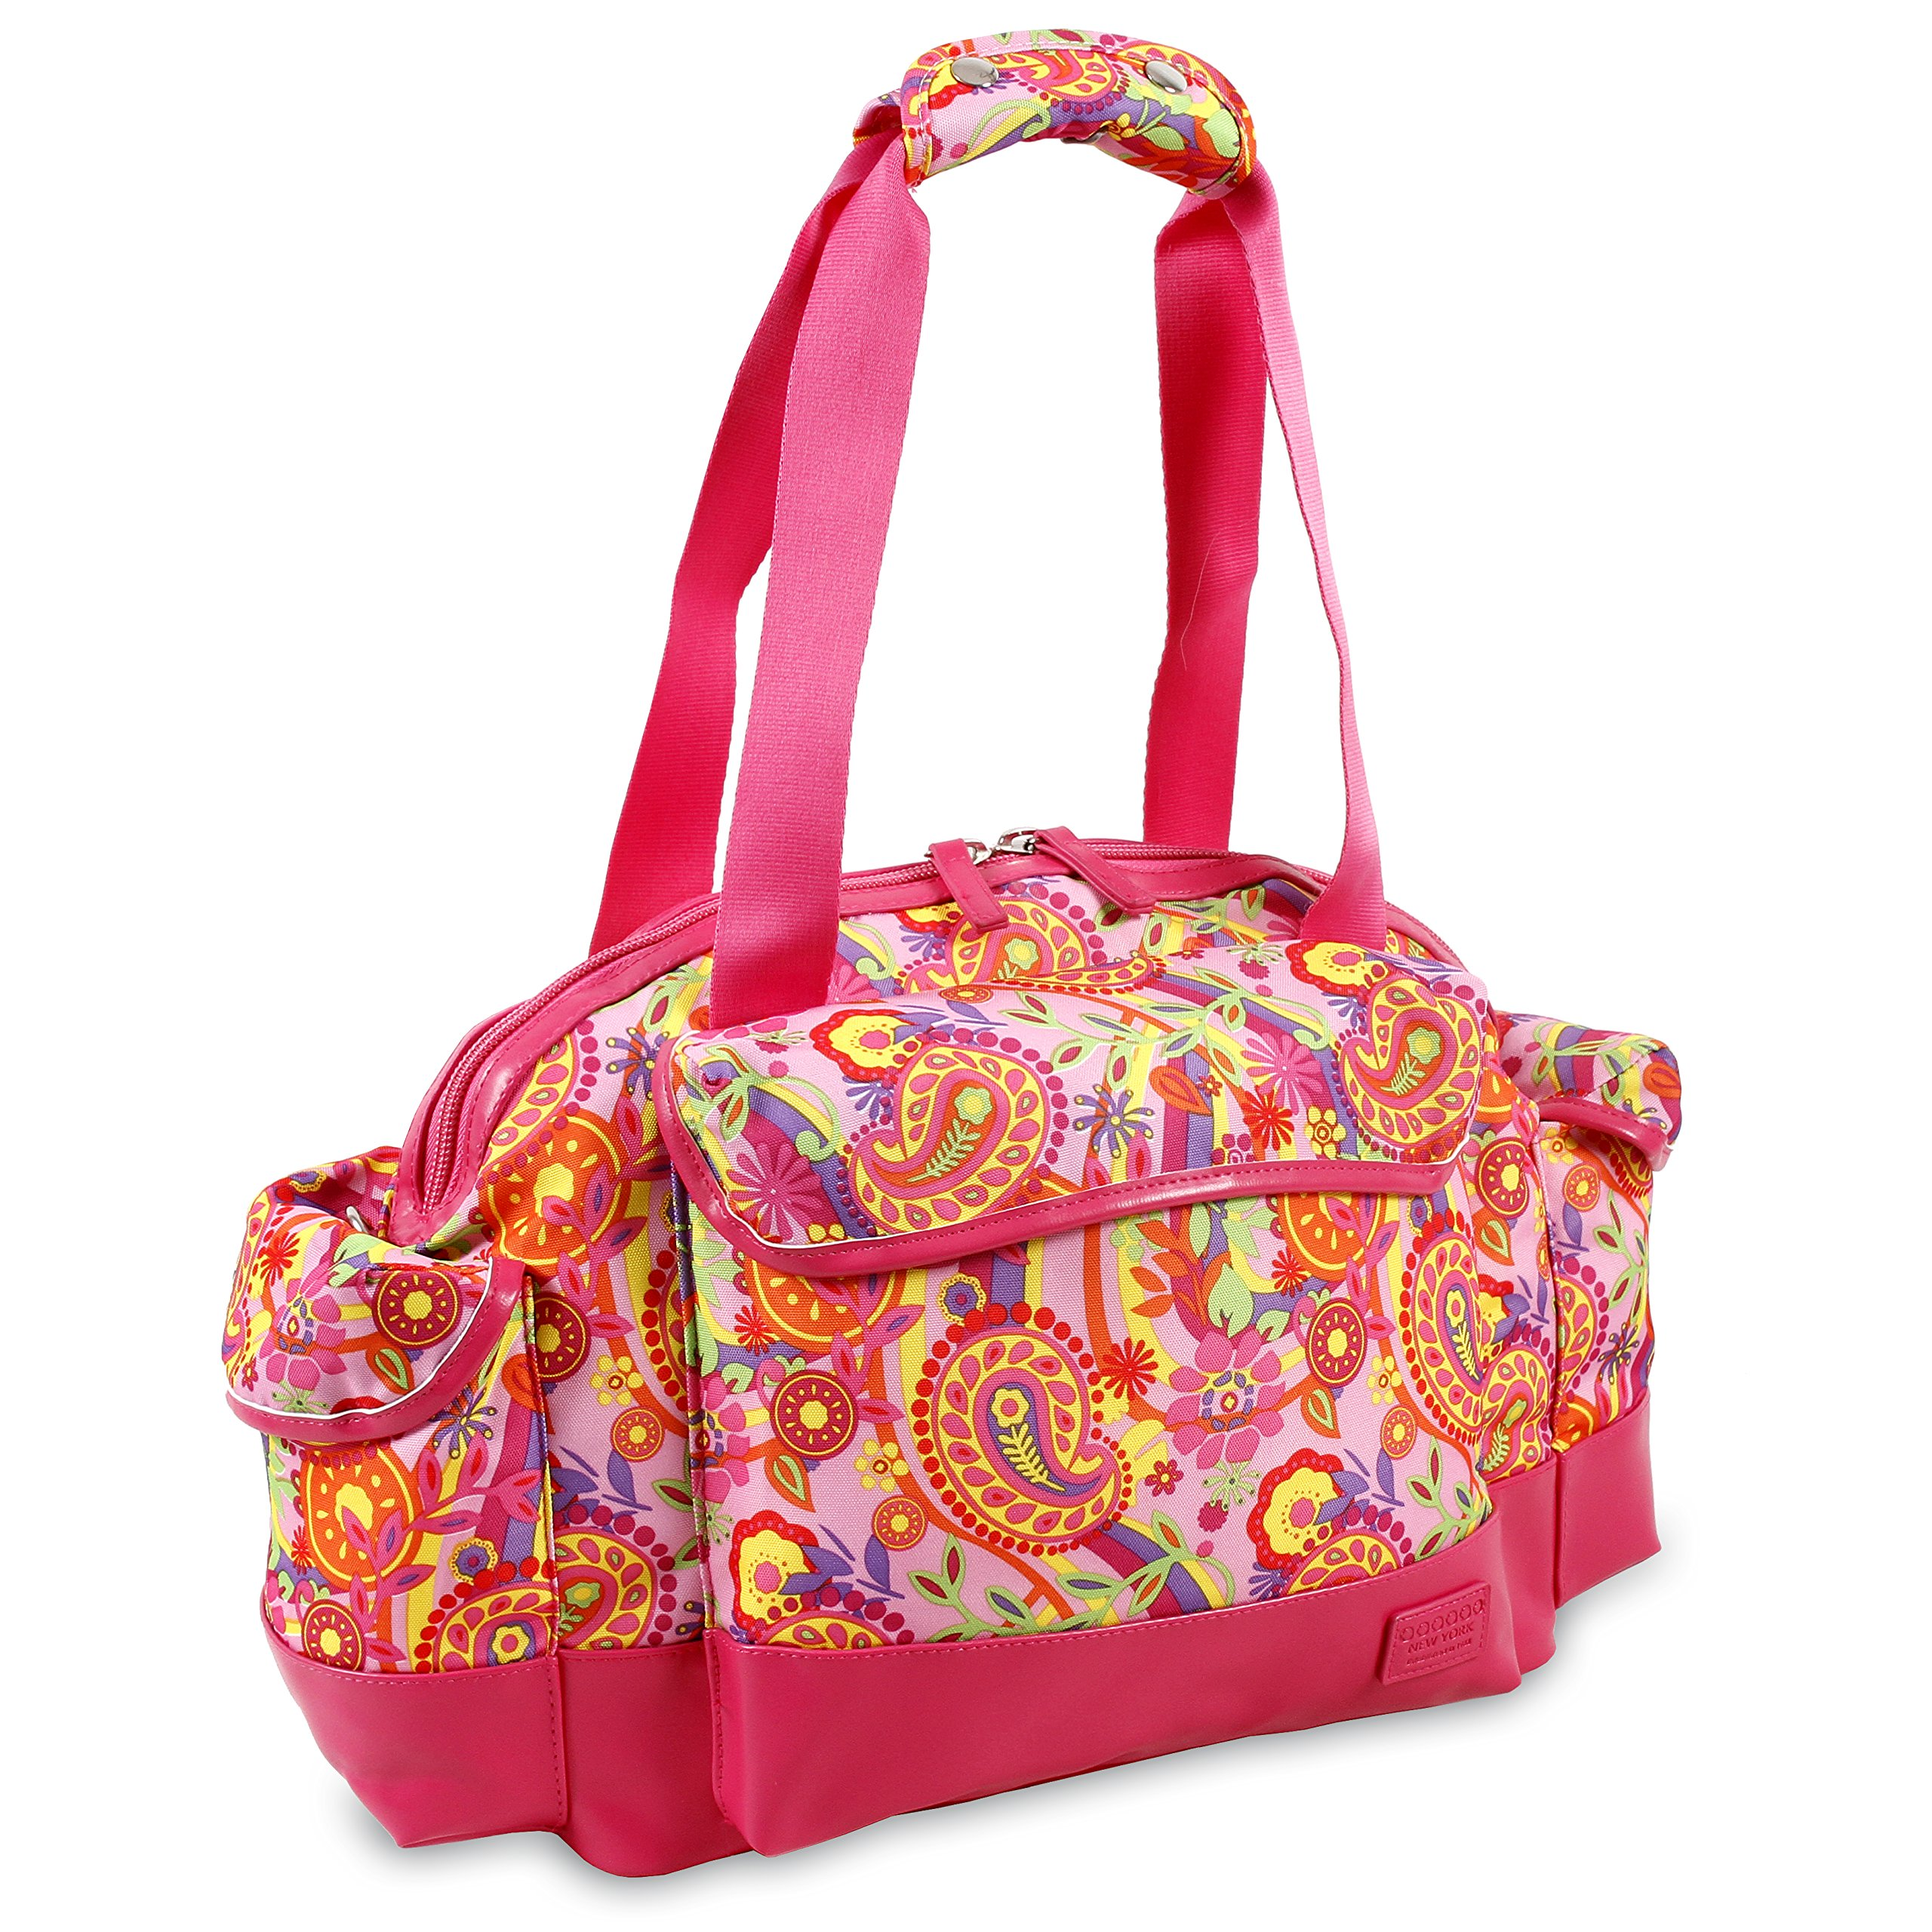 J World New York Deca Duffel Bag, Pink Paisley